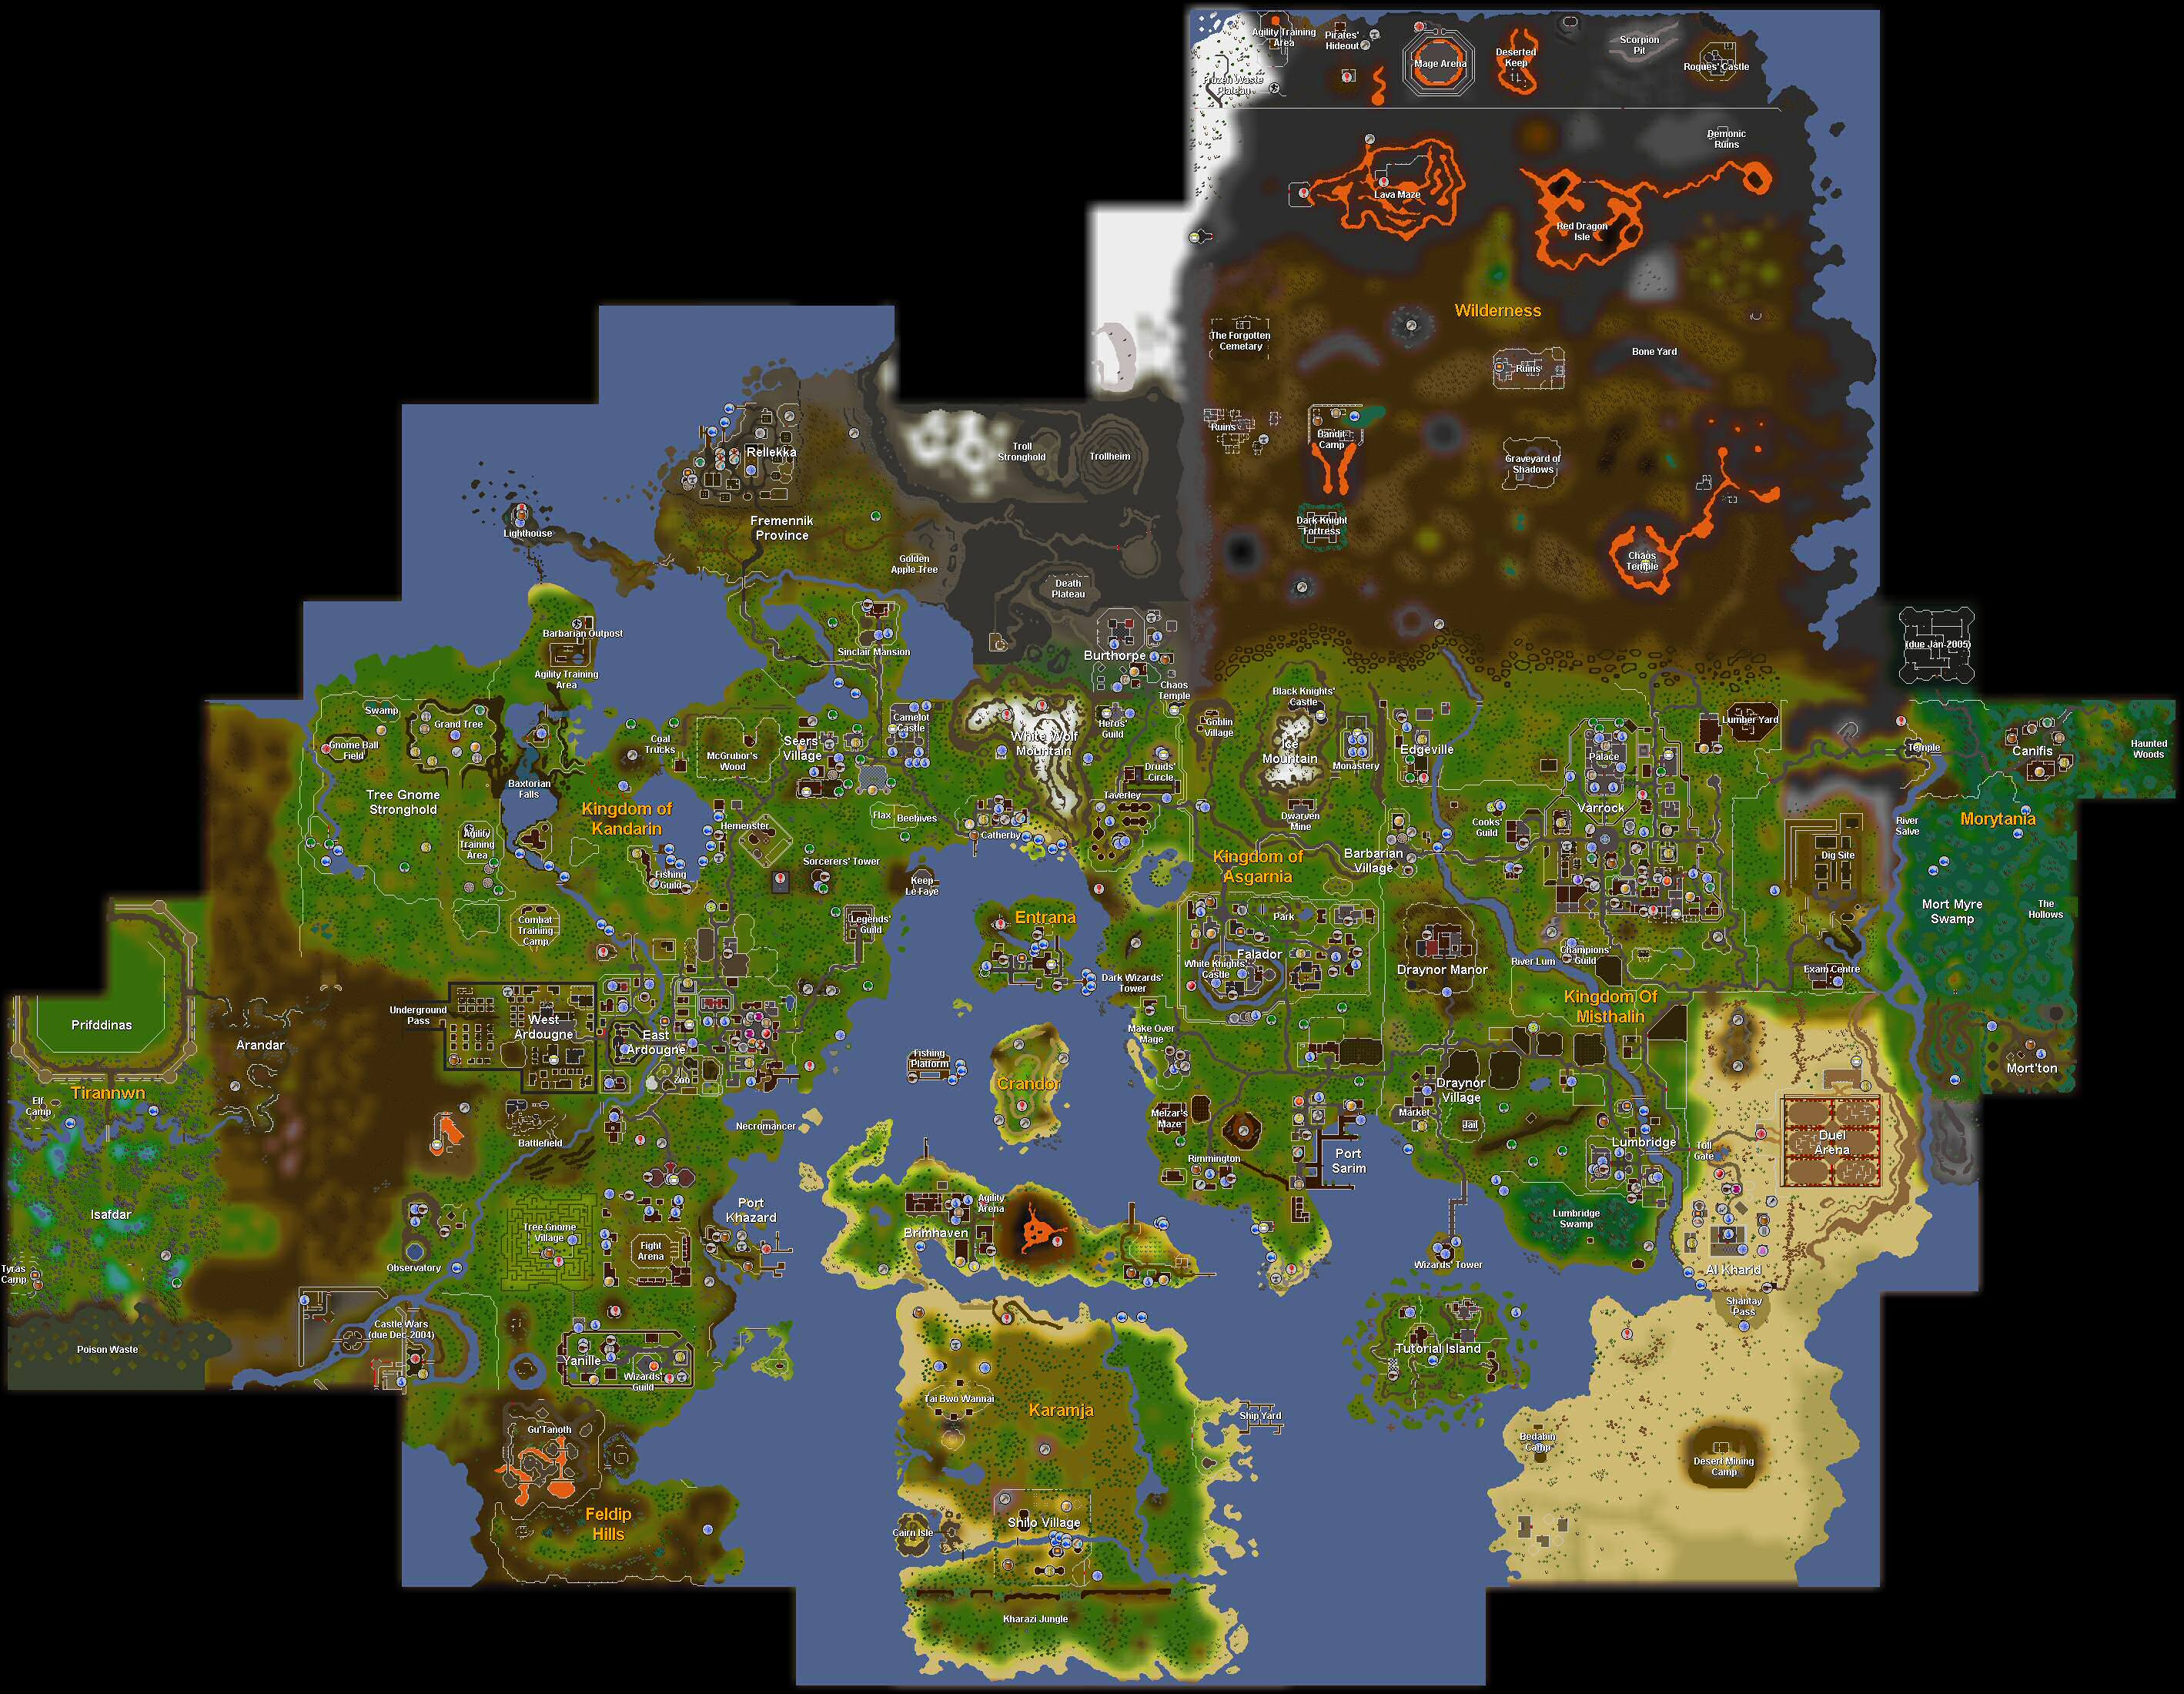 Runescape World Map 07.World Map History Runescape Wiki Fandom Powered By Wikia